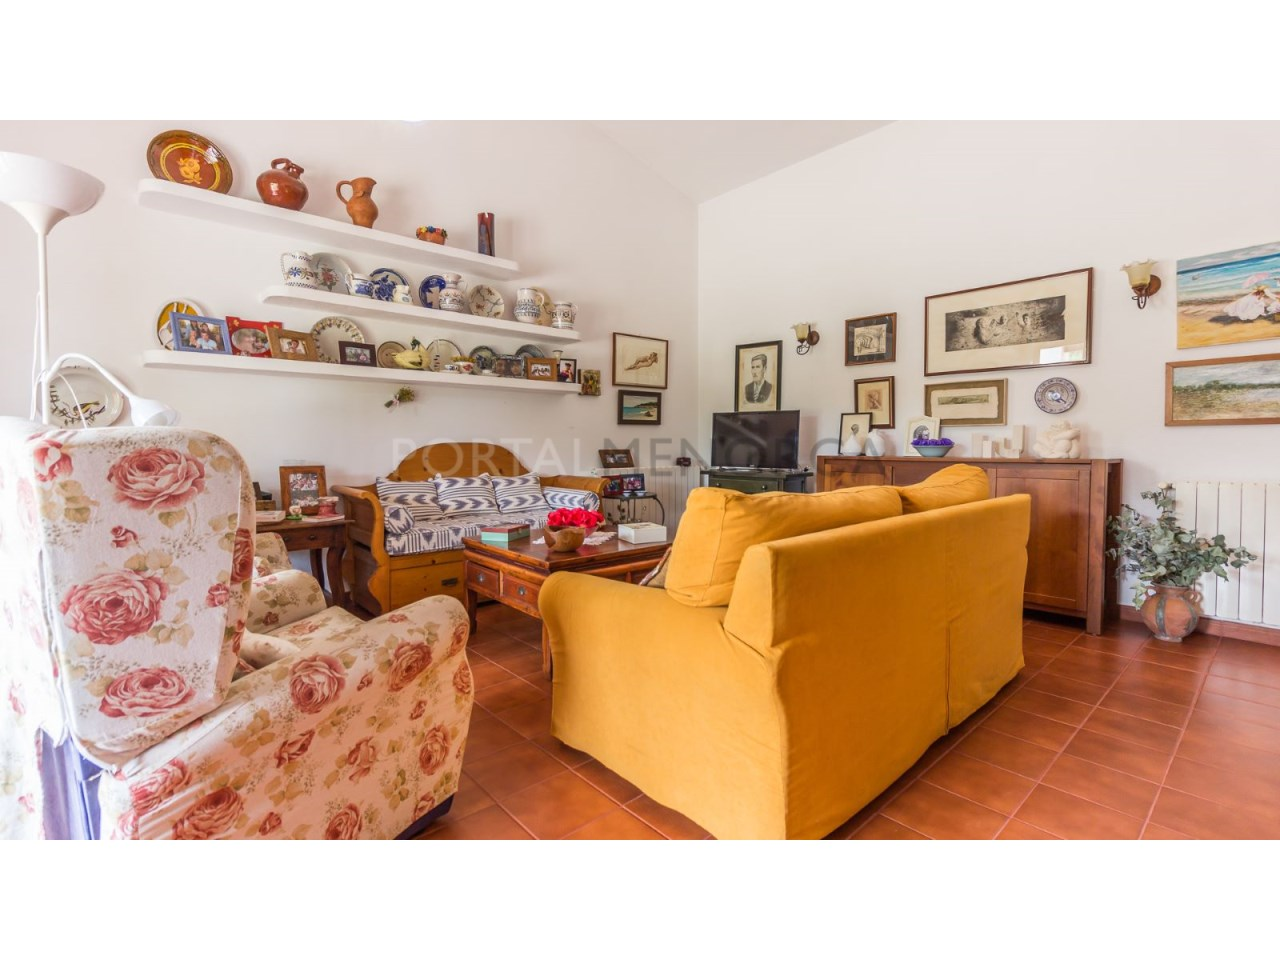 Country house for sale in Cala Galdana,Menorca - Living room with fireplace